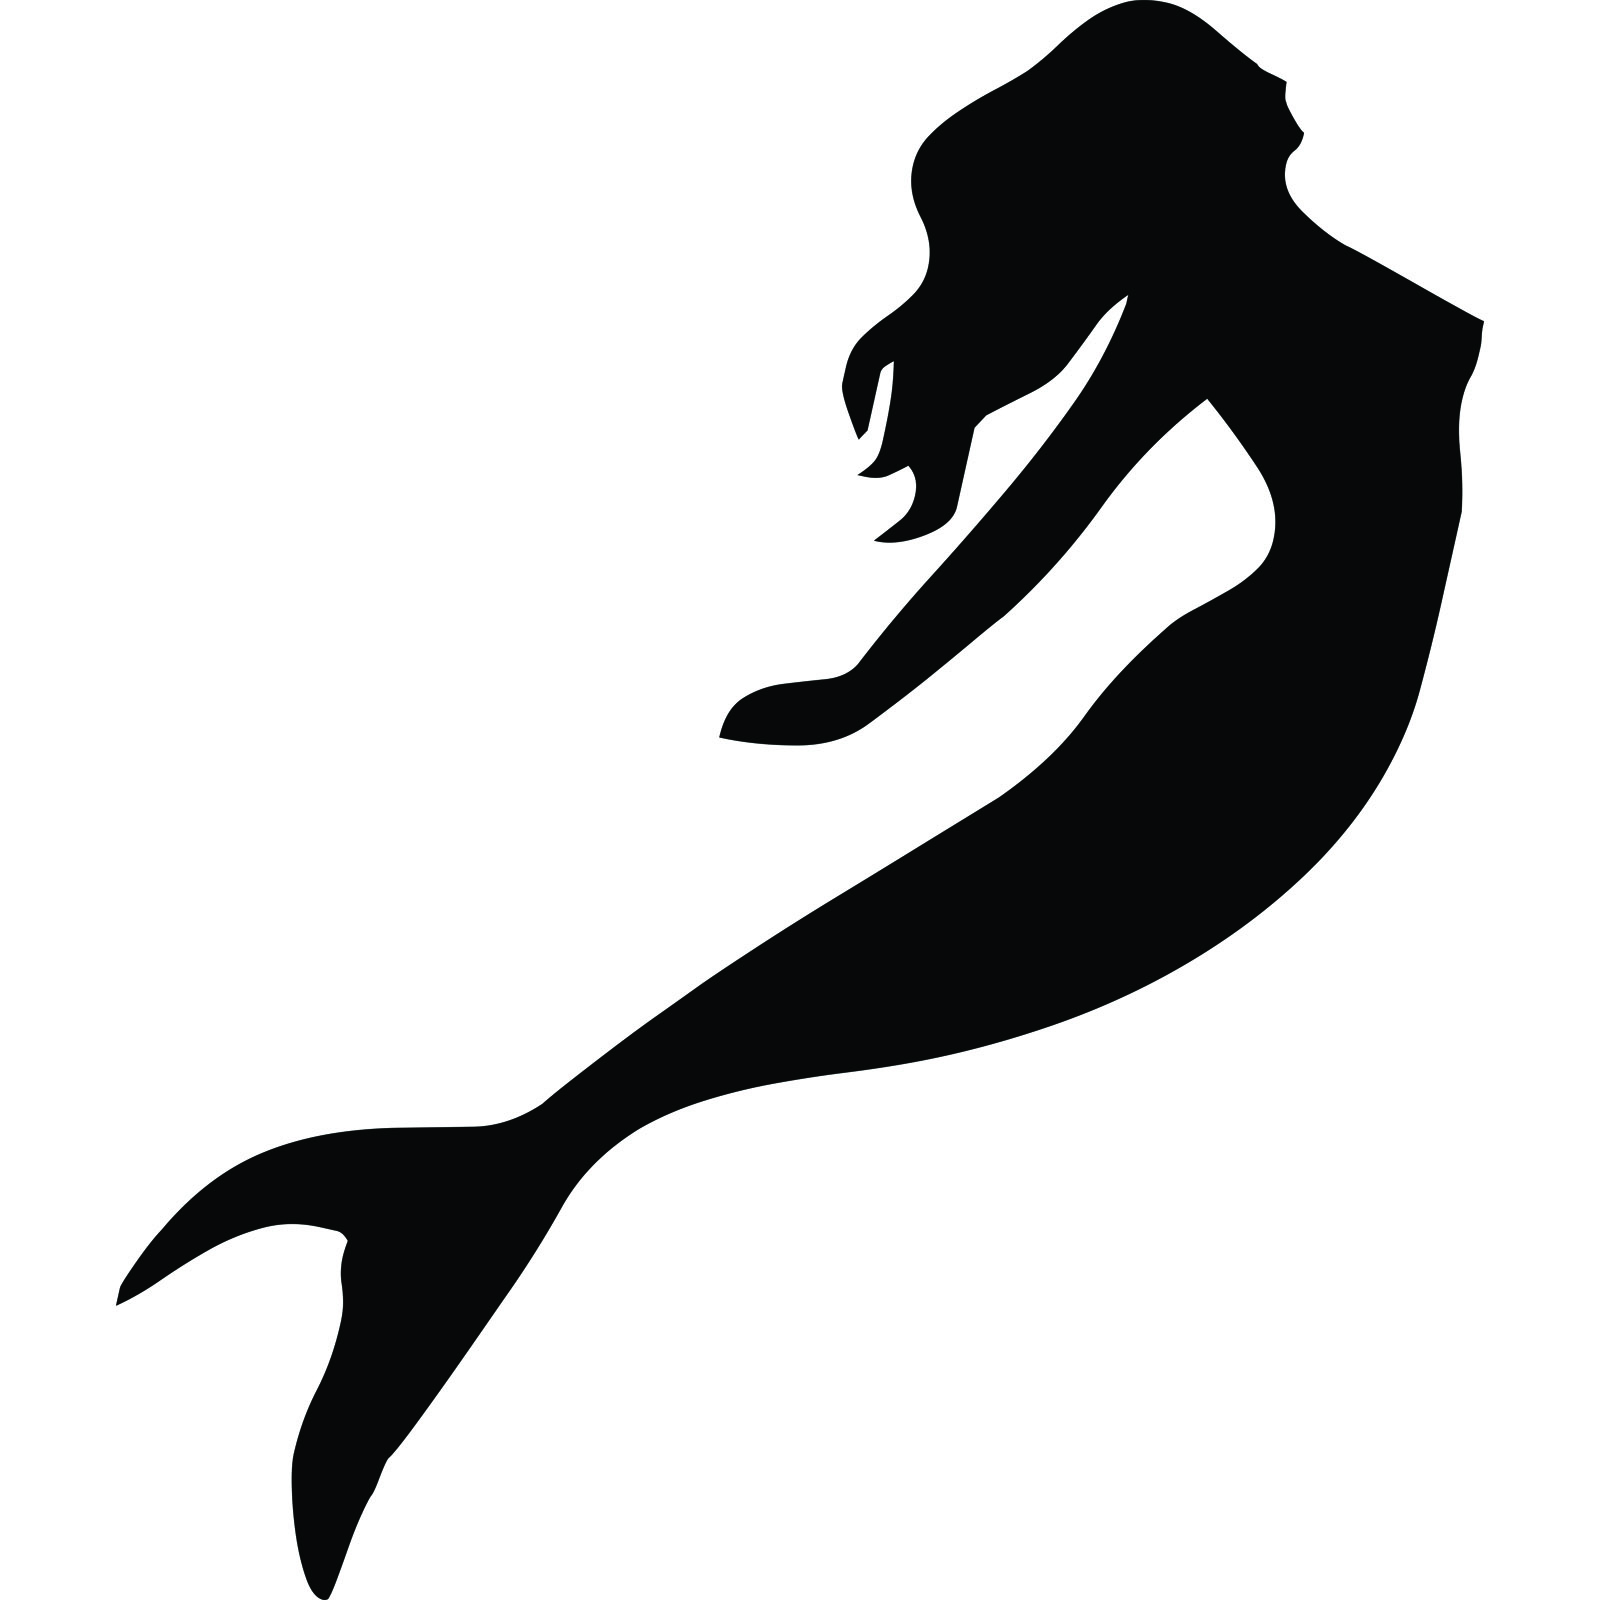 Mermaid silhouette clipart picture black and white Free Mermaid Silhouette, Download Free Clip Art, Free Clip ... picture black and white